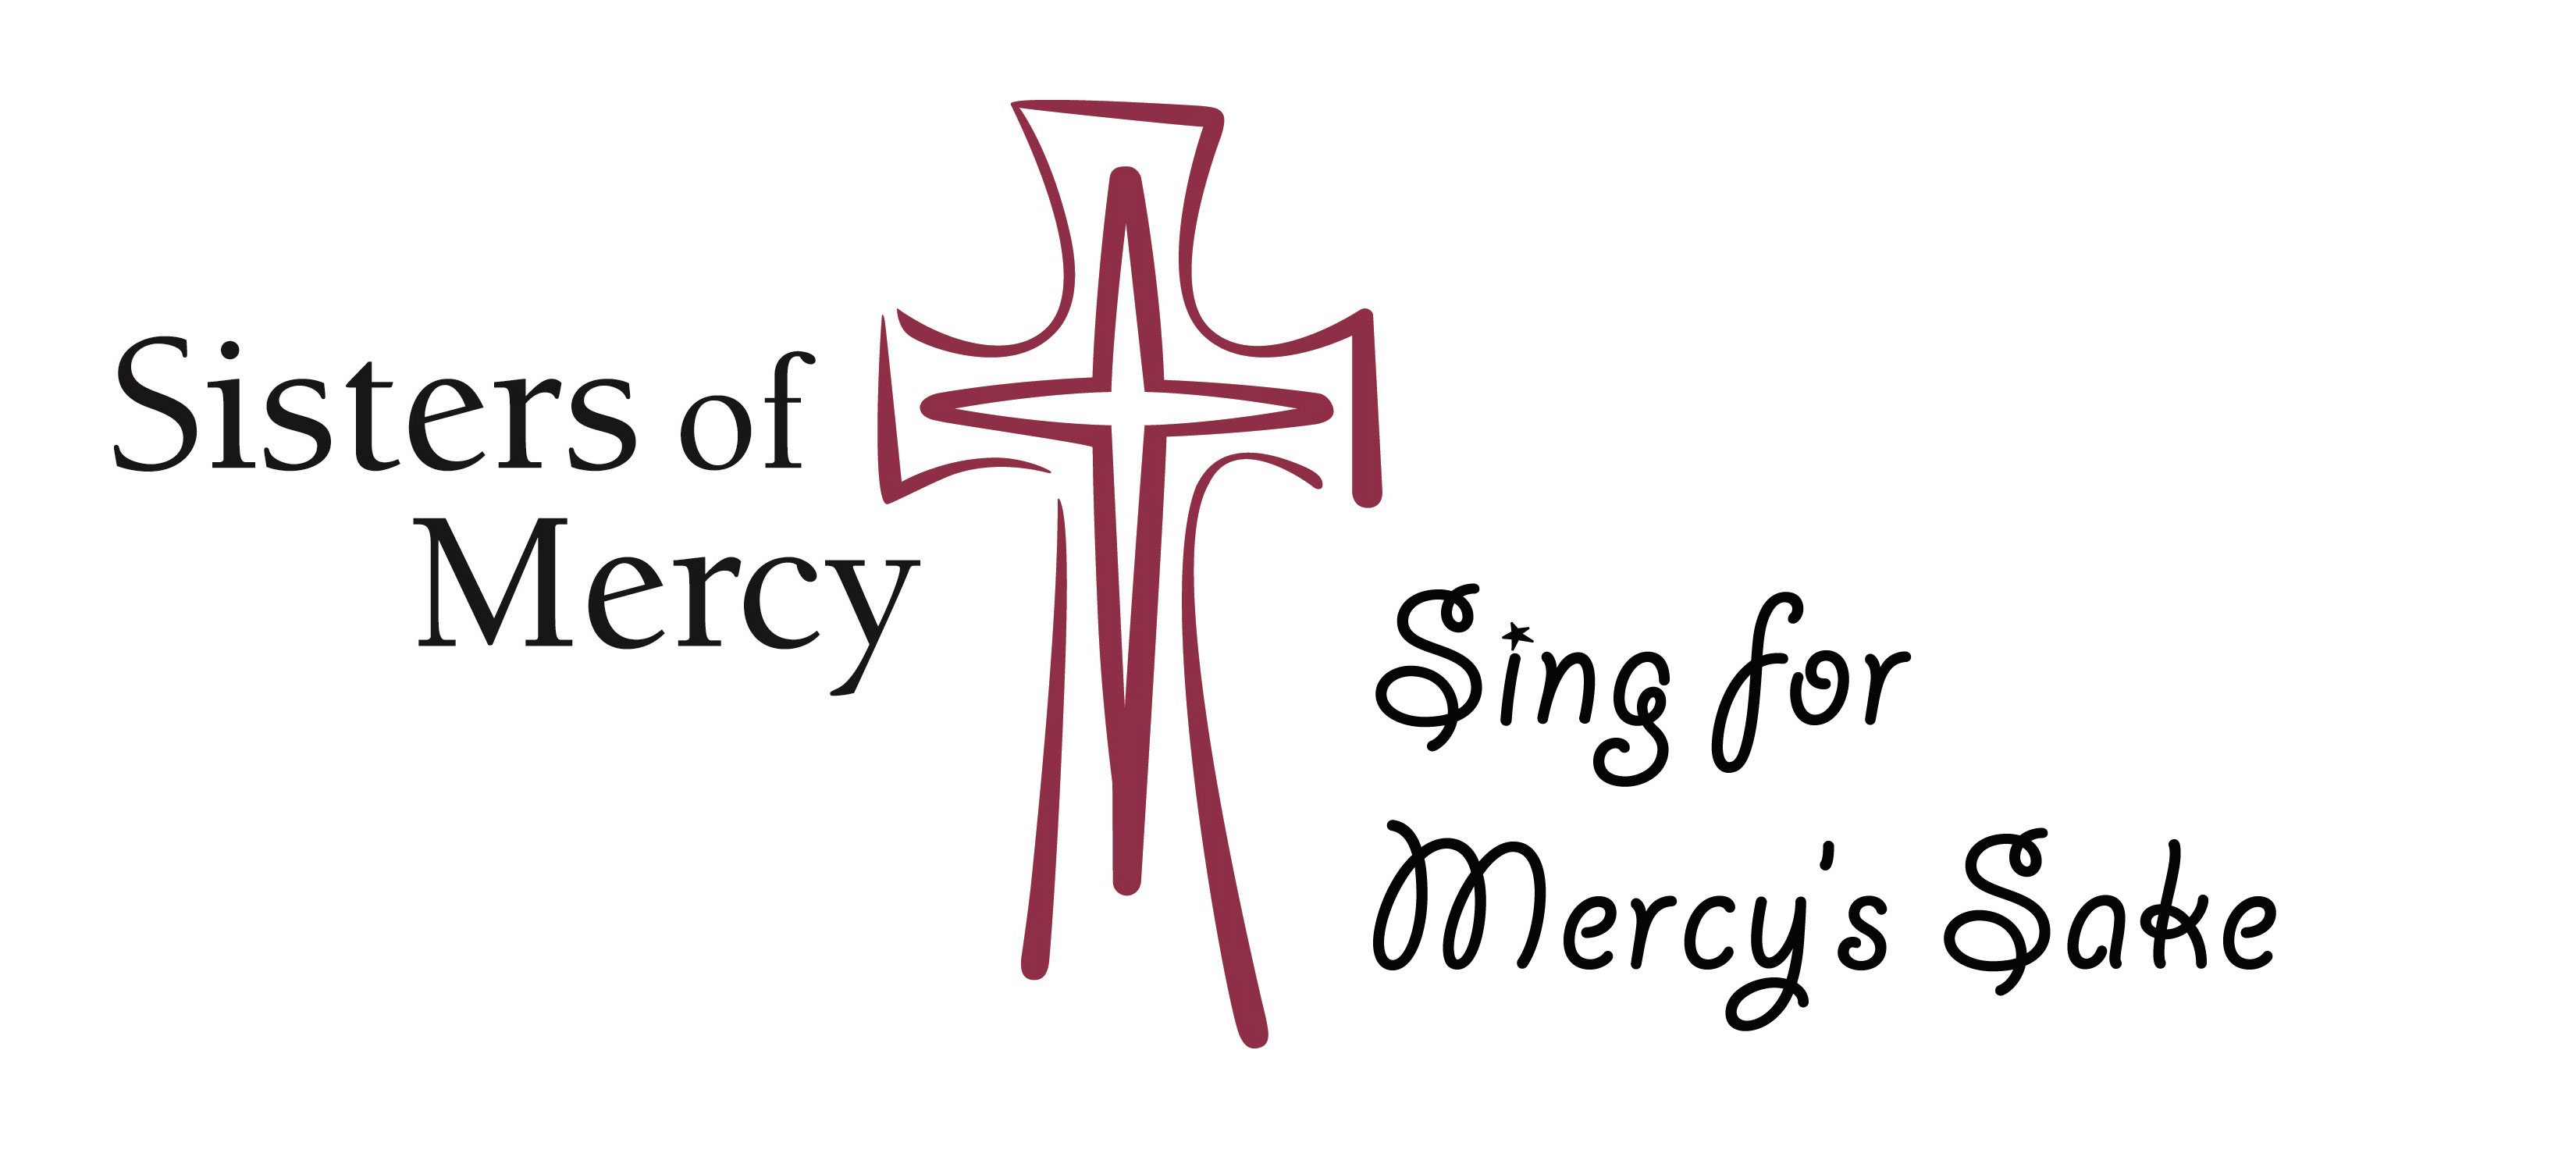 Music For Mercys Sake Purchase Tickets Sisters Of Mercy New York